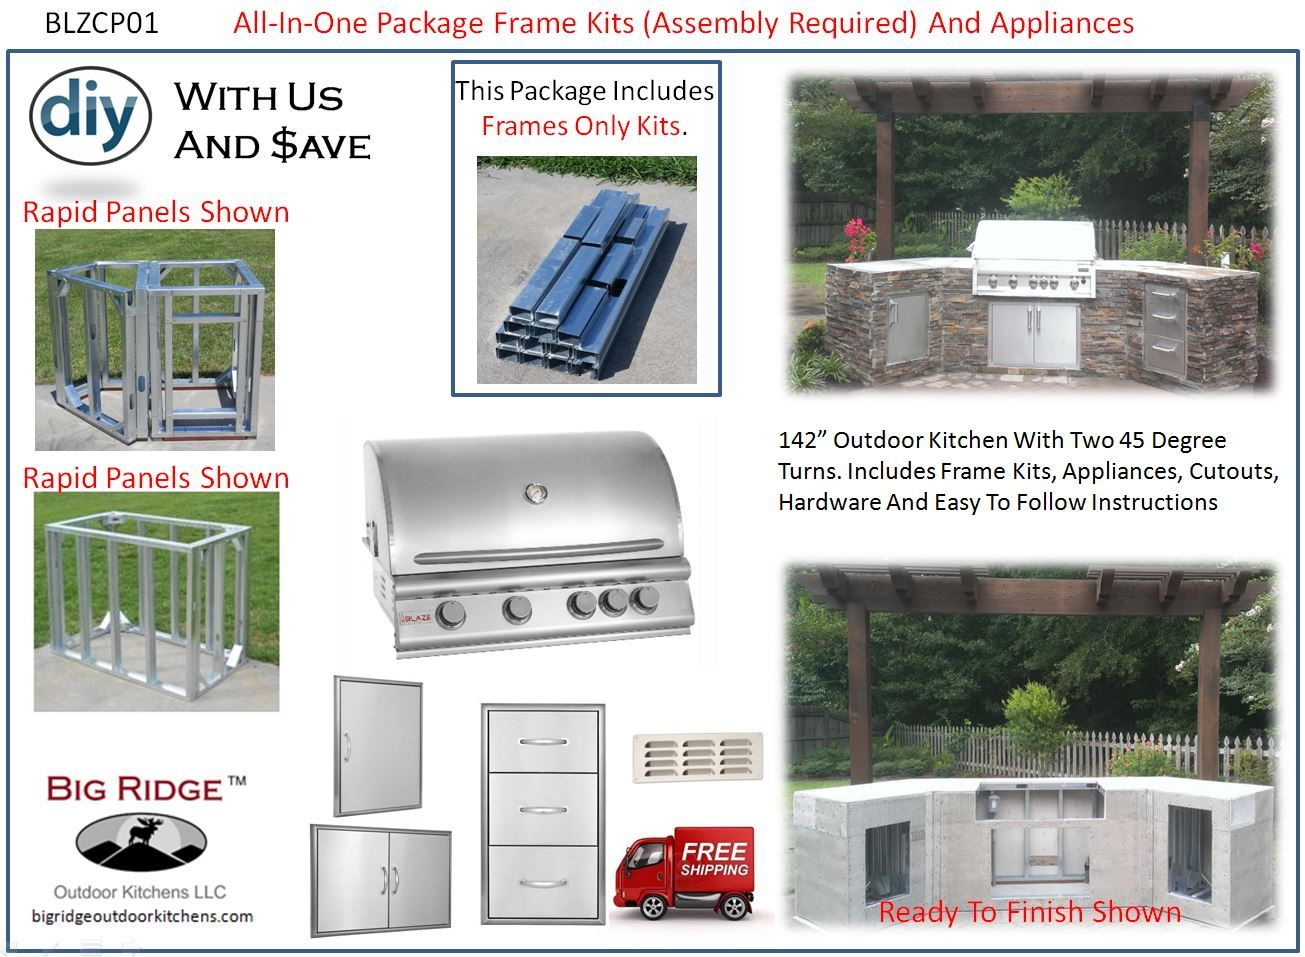 Blzp01 Outdoor Kitchen Kit Package Blaze Appliance And Module Frame Kits Assembly Required Outdoor Patio Ideas Backyards Outdoor Kitchen Kits Outdoor Kitchen